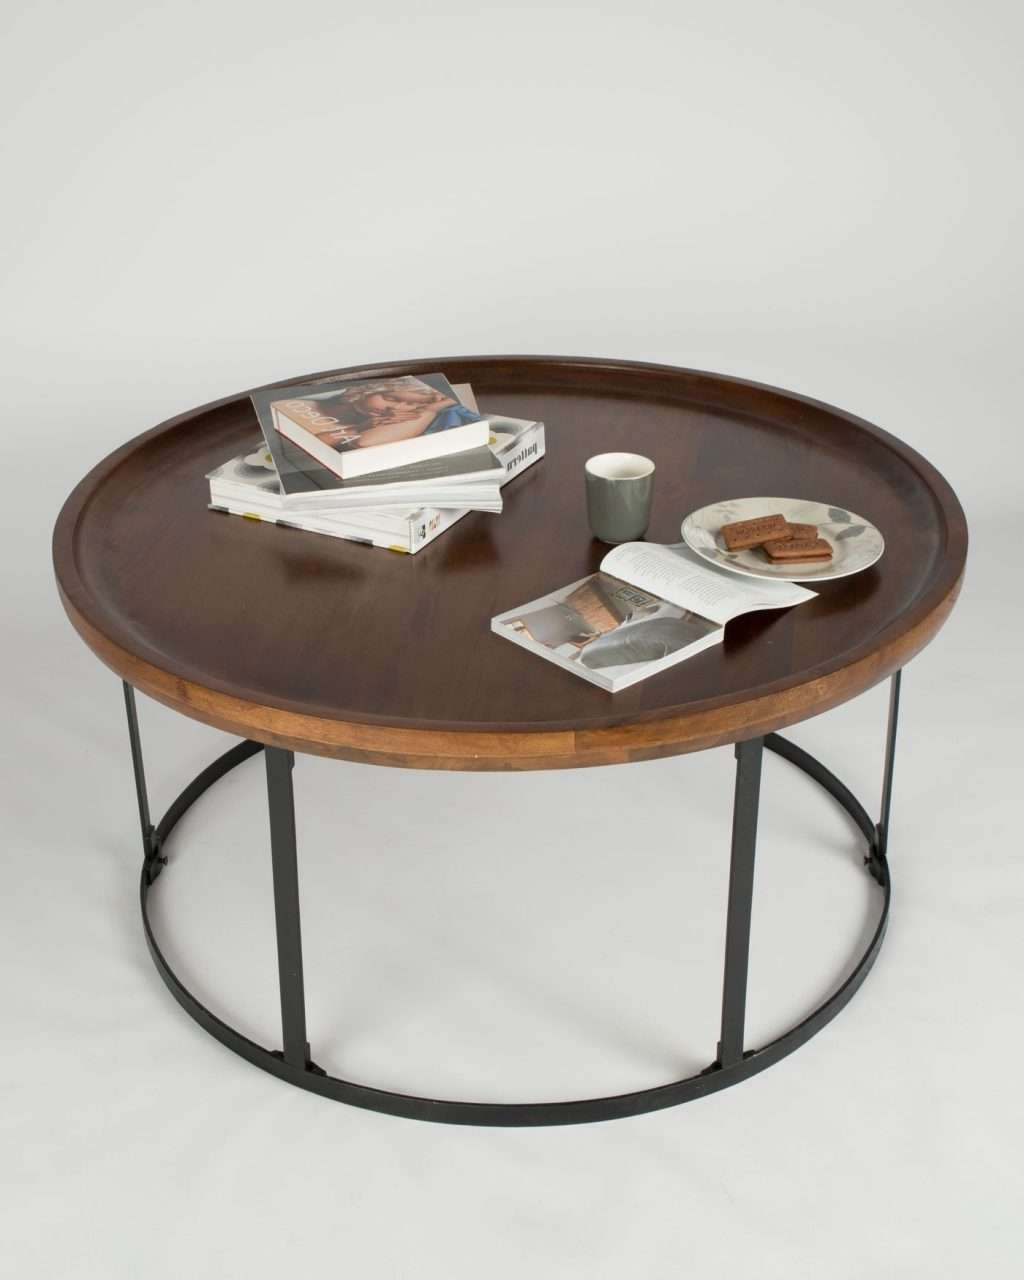 Home ~ Square Glass Coffee Table Distressed Chest White Marble Throughout Trendy Square Dark Wood Coffee Tables (View 11 of 20)